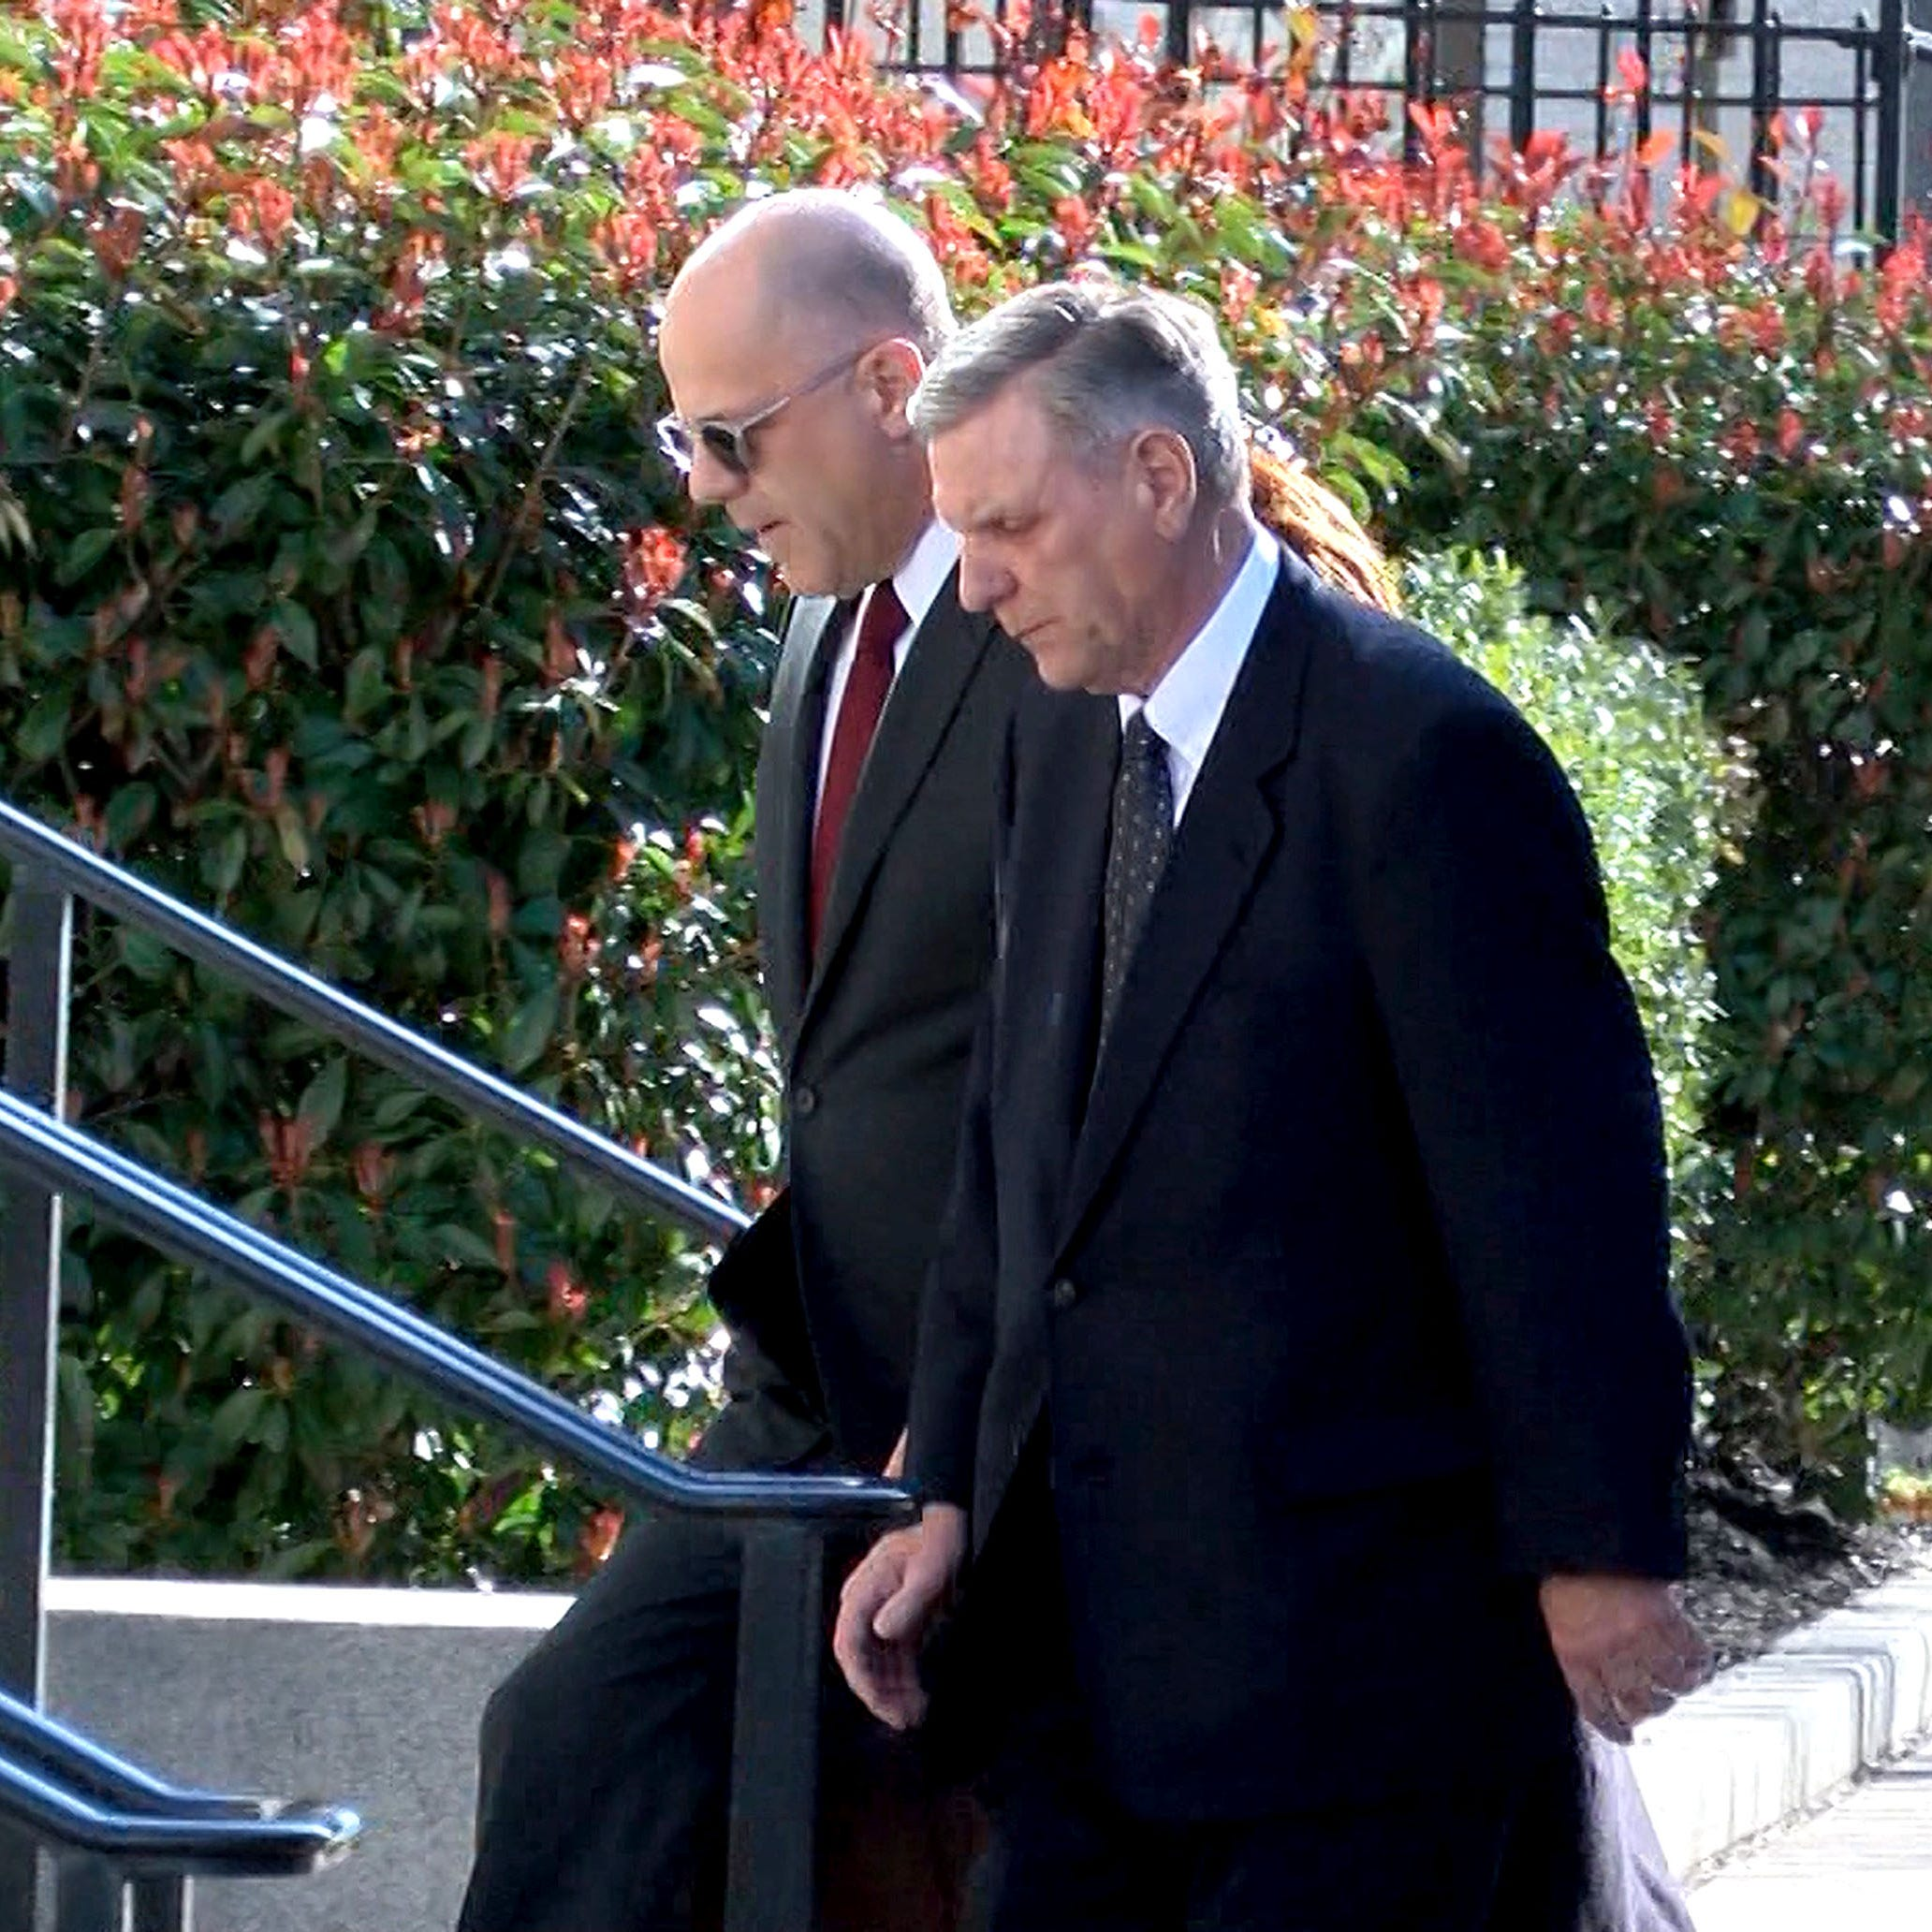 George Gilmore tax trial: Ocean County GOP leader guilty on three counts